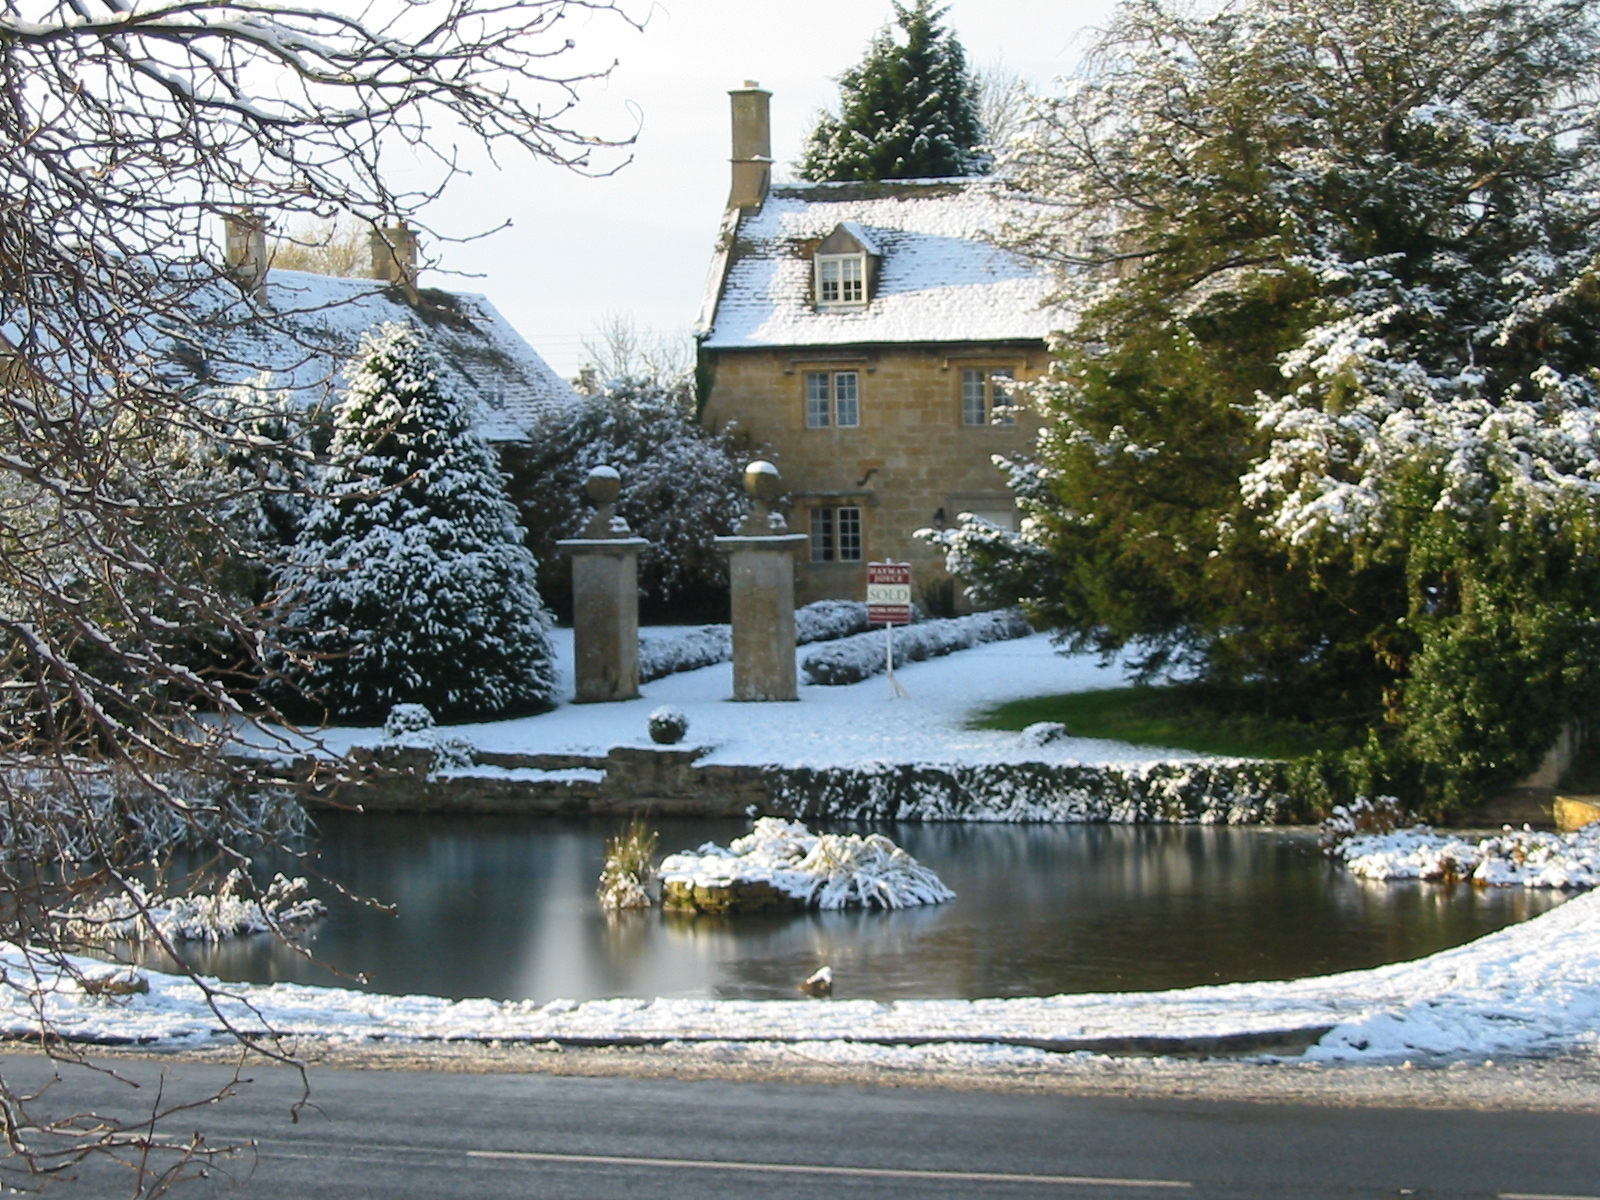 Duck pond in snow